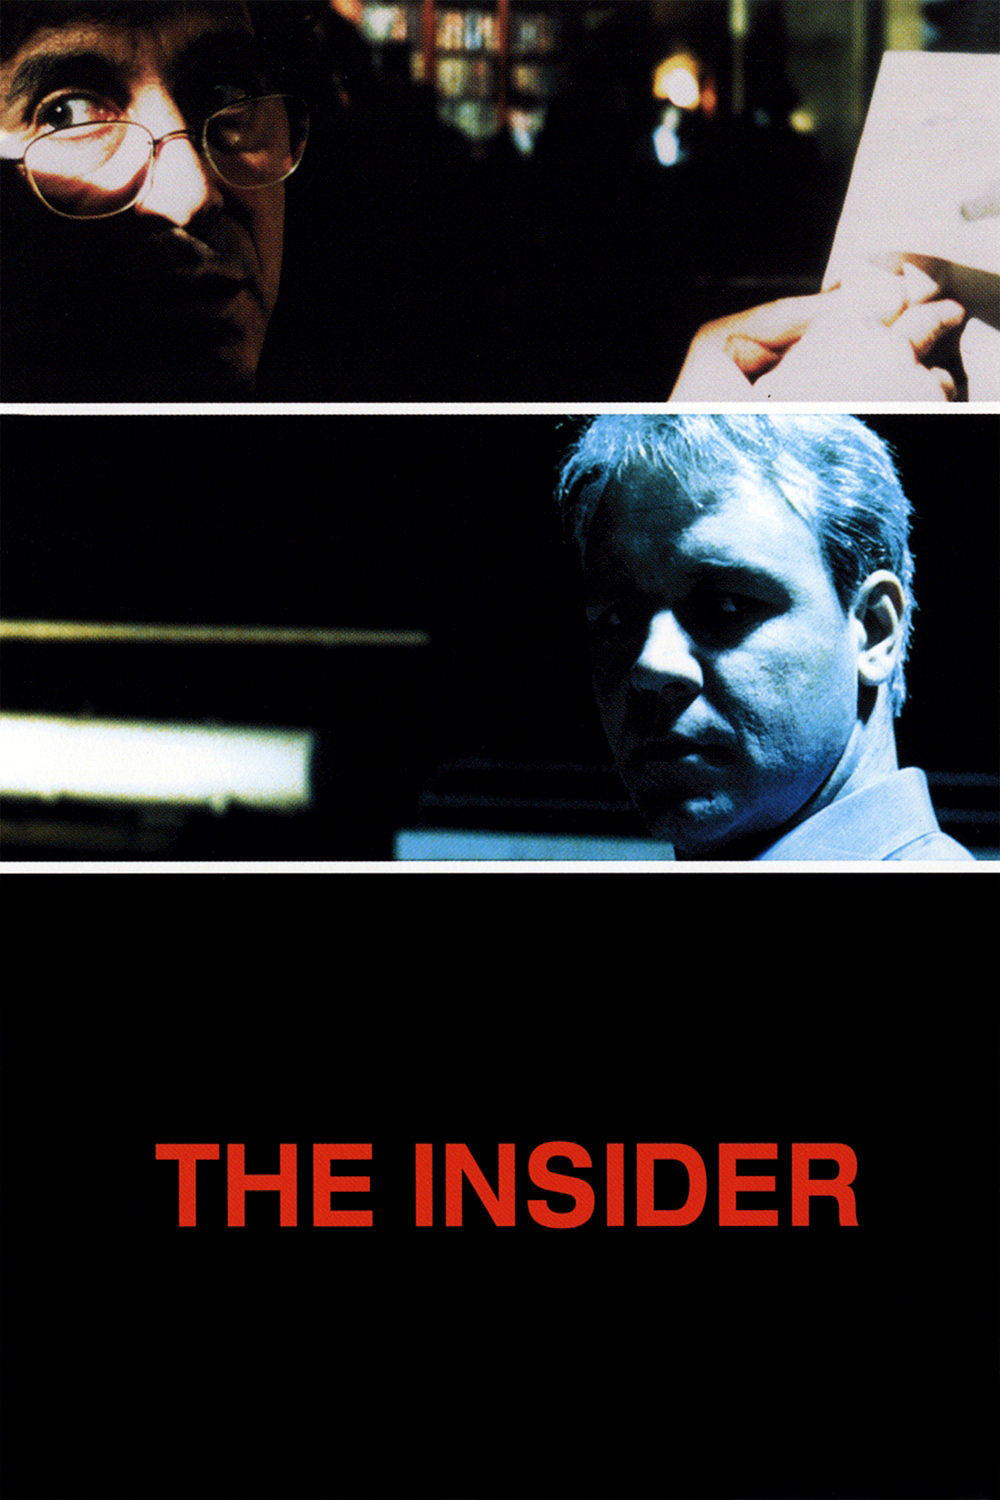 an analysis of the tobacco industry in the insider by michael mann